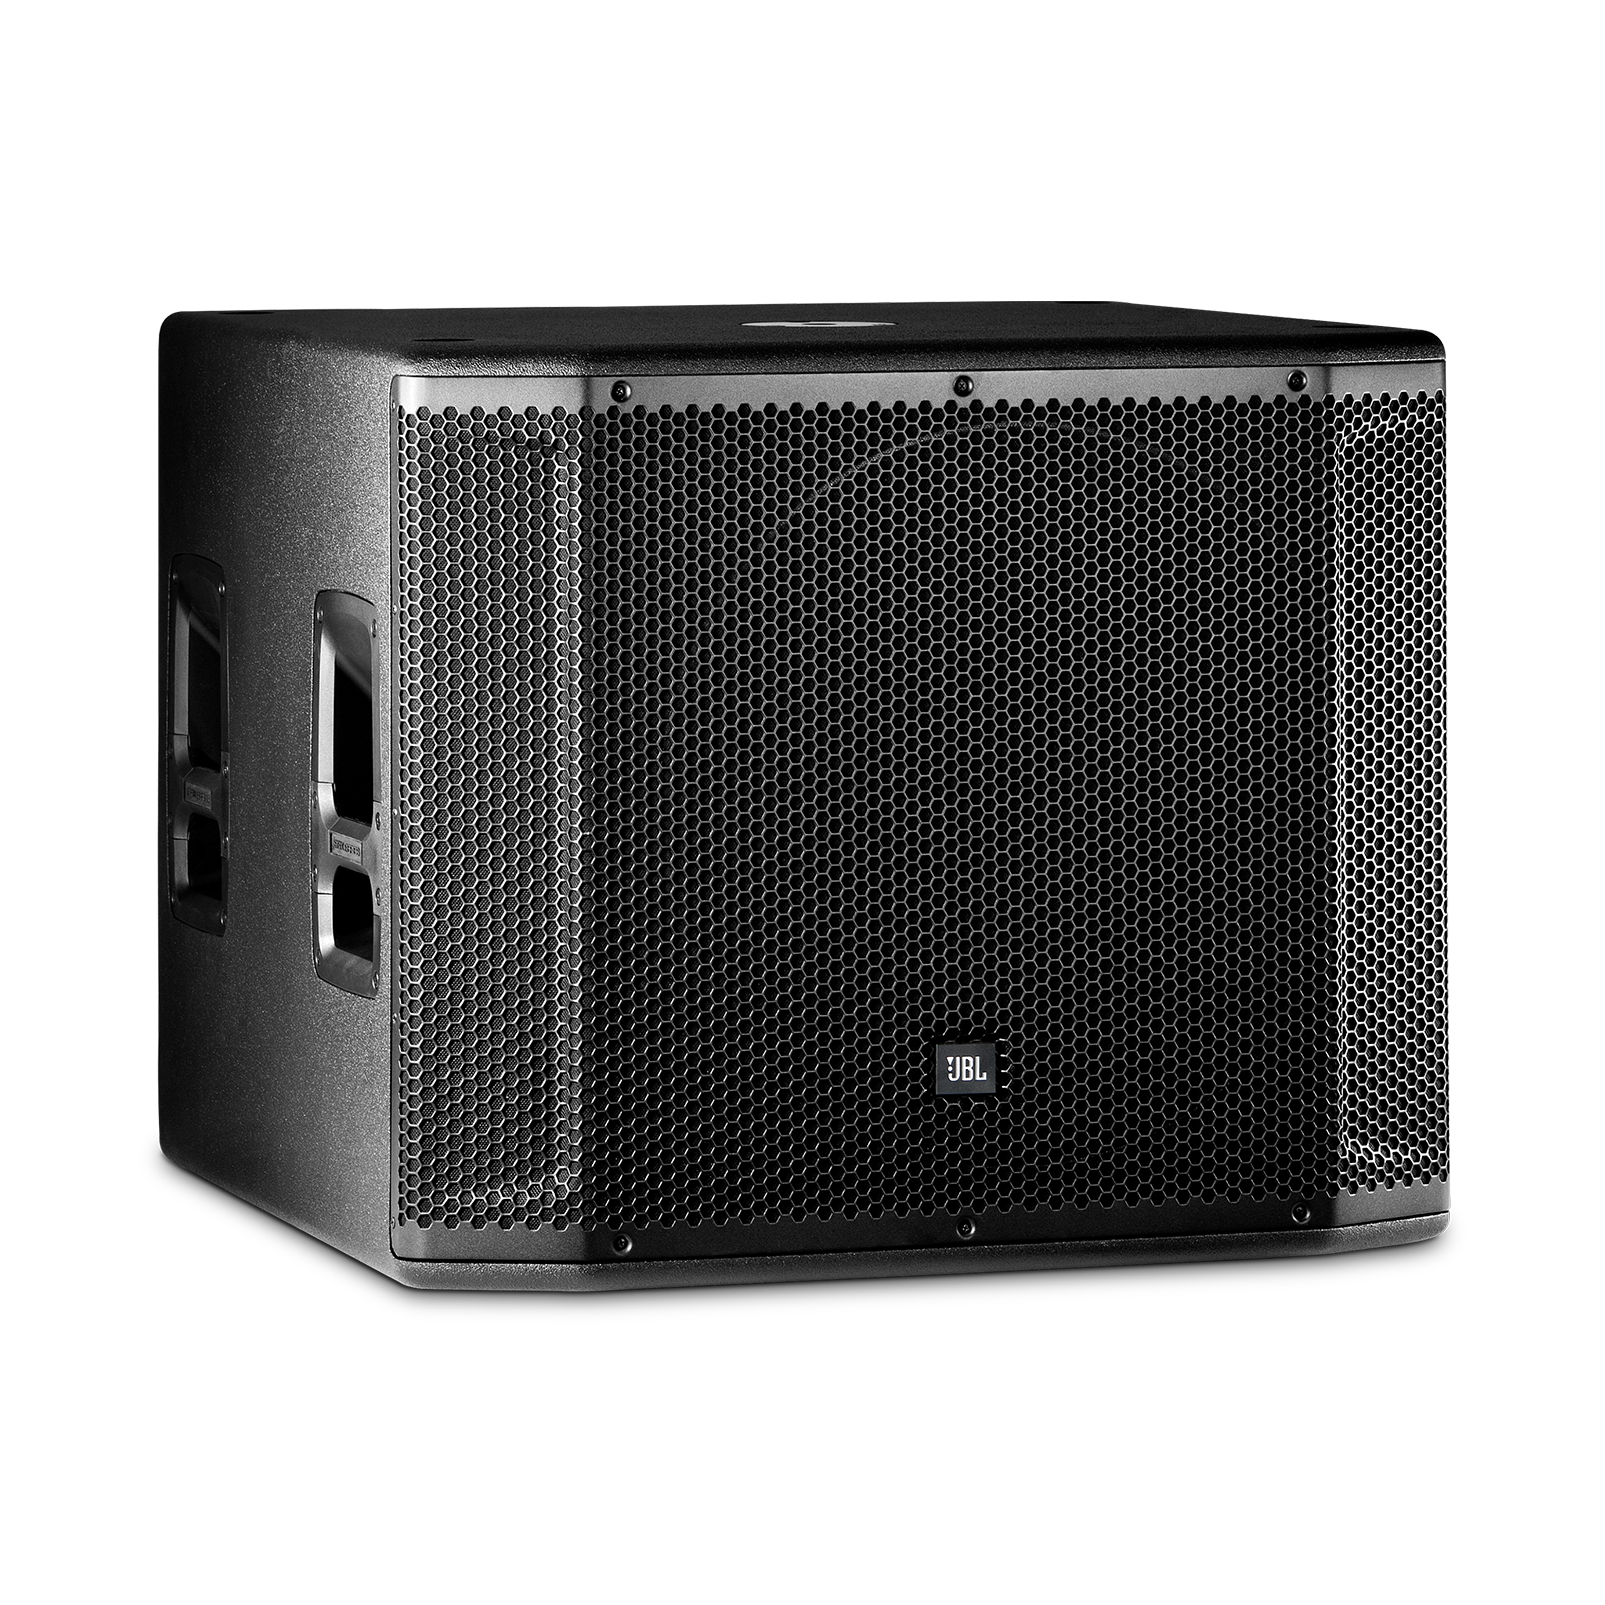 Jbl Srx828sp 18 Dual Self Powered Subwoofer System Coil Device And Speaker Using On Wiring Speakers Voice Srx818sp